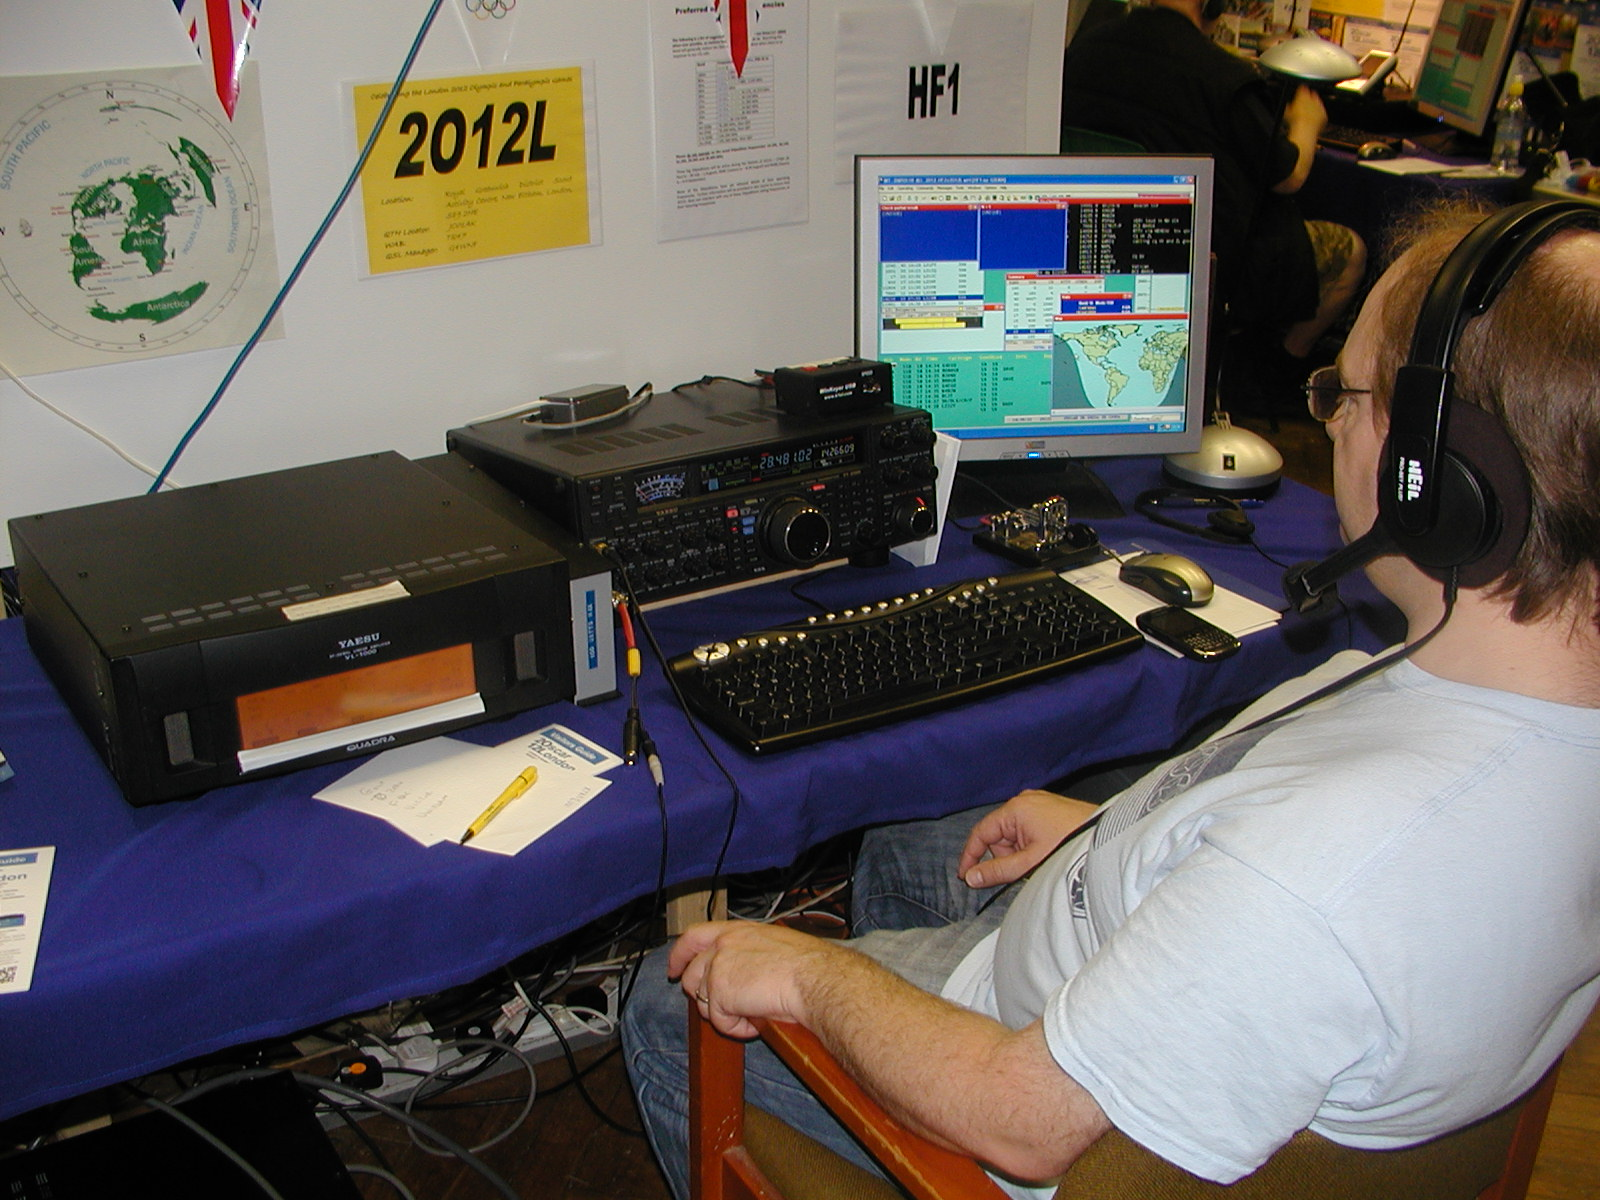 Guy G0UKN operating the Olympics station 2O12L